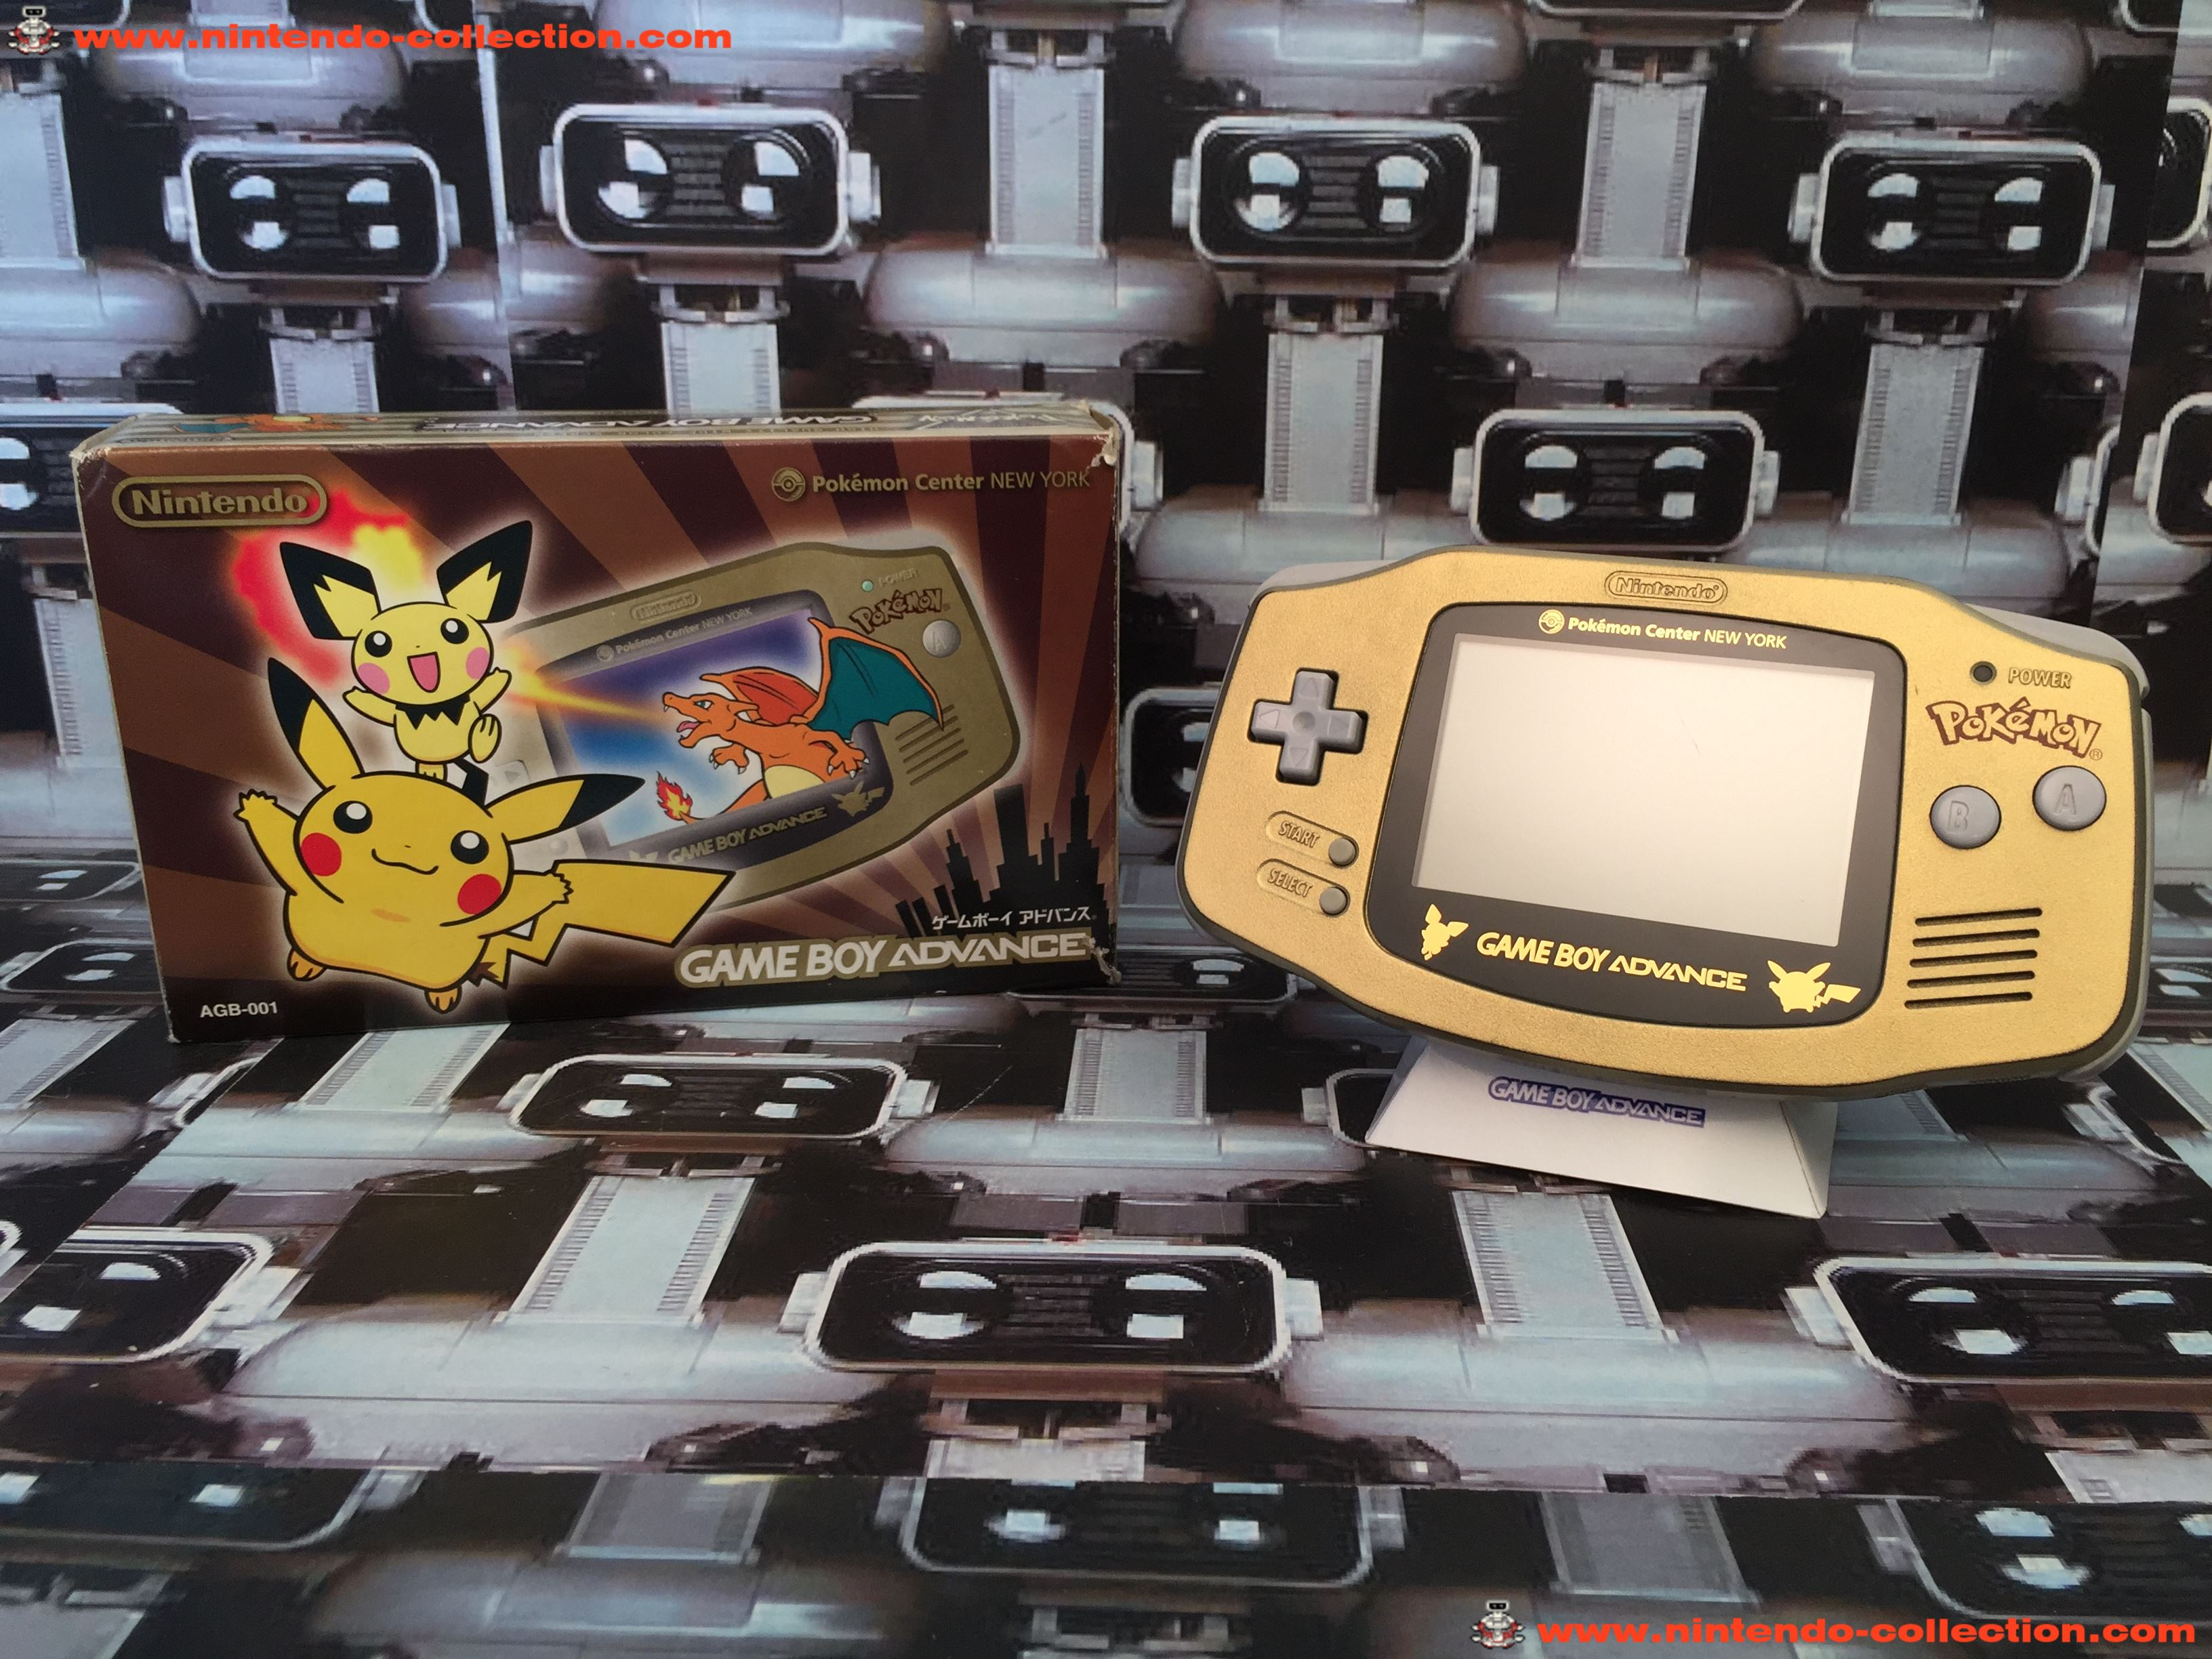 www.nintendo-collection.com - Gameboy Advance GBA Pokemon Center Nex-York Pikachu Pichu Limited Edit